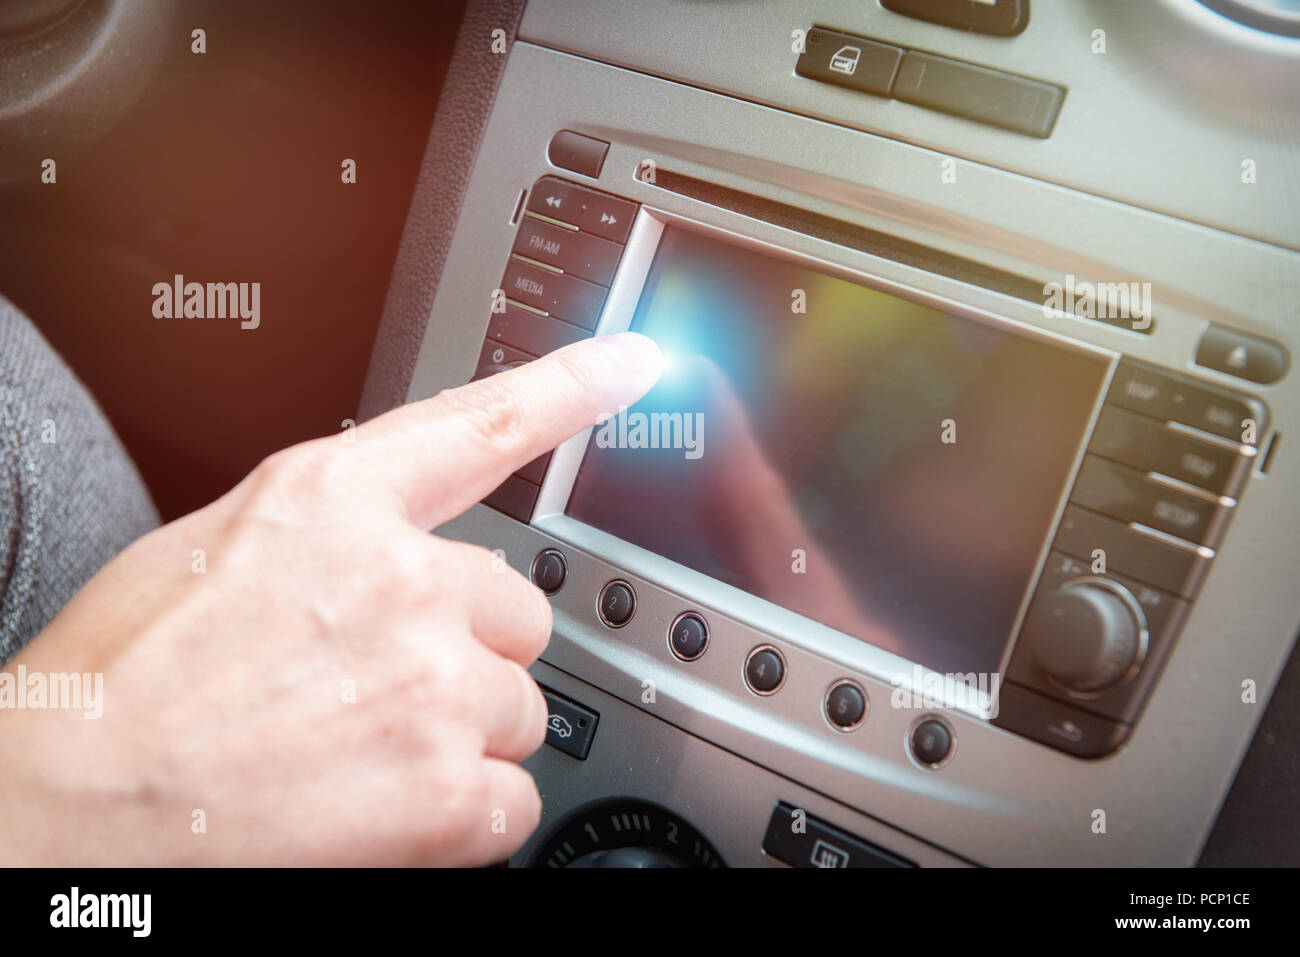 Driver using touchscreen to adjust car navigation or other systems settings - Stock Image